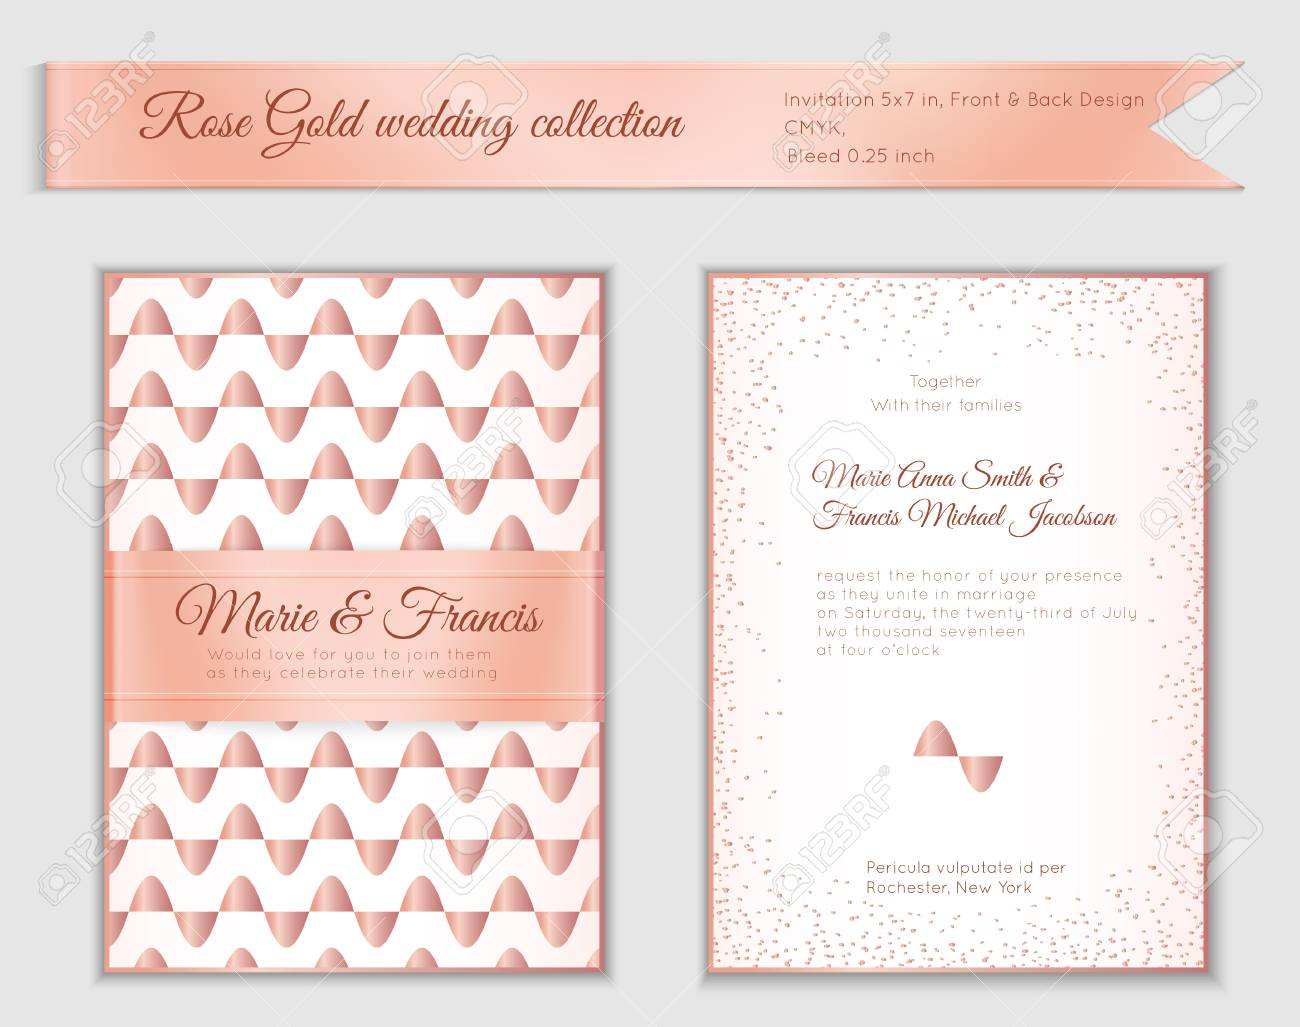 Luxury Wedding Invitation Template With Rose Gold Shiny Realistic ...